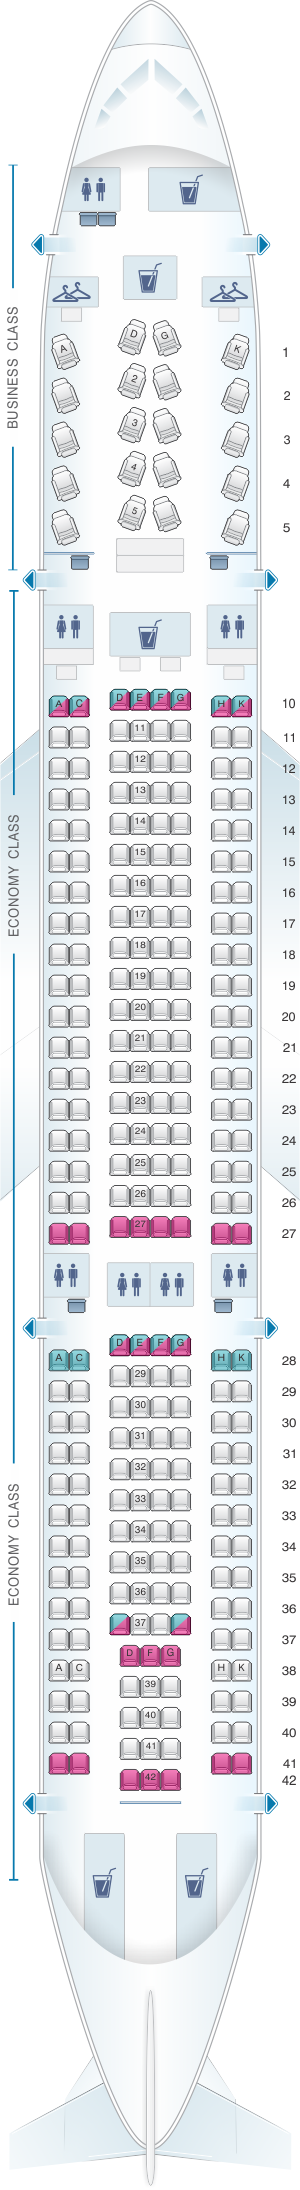 Seat map for Virgin Australia Airbus A330 200